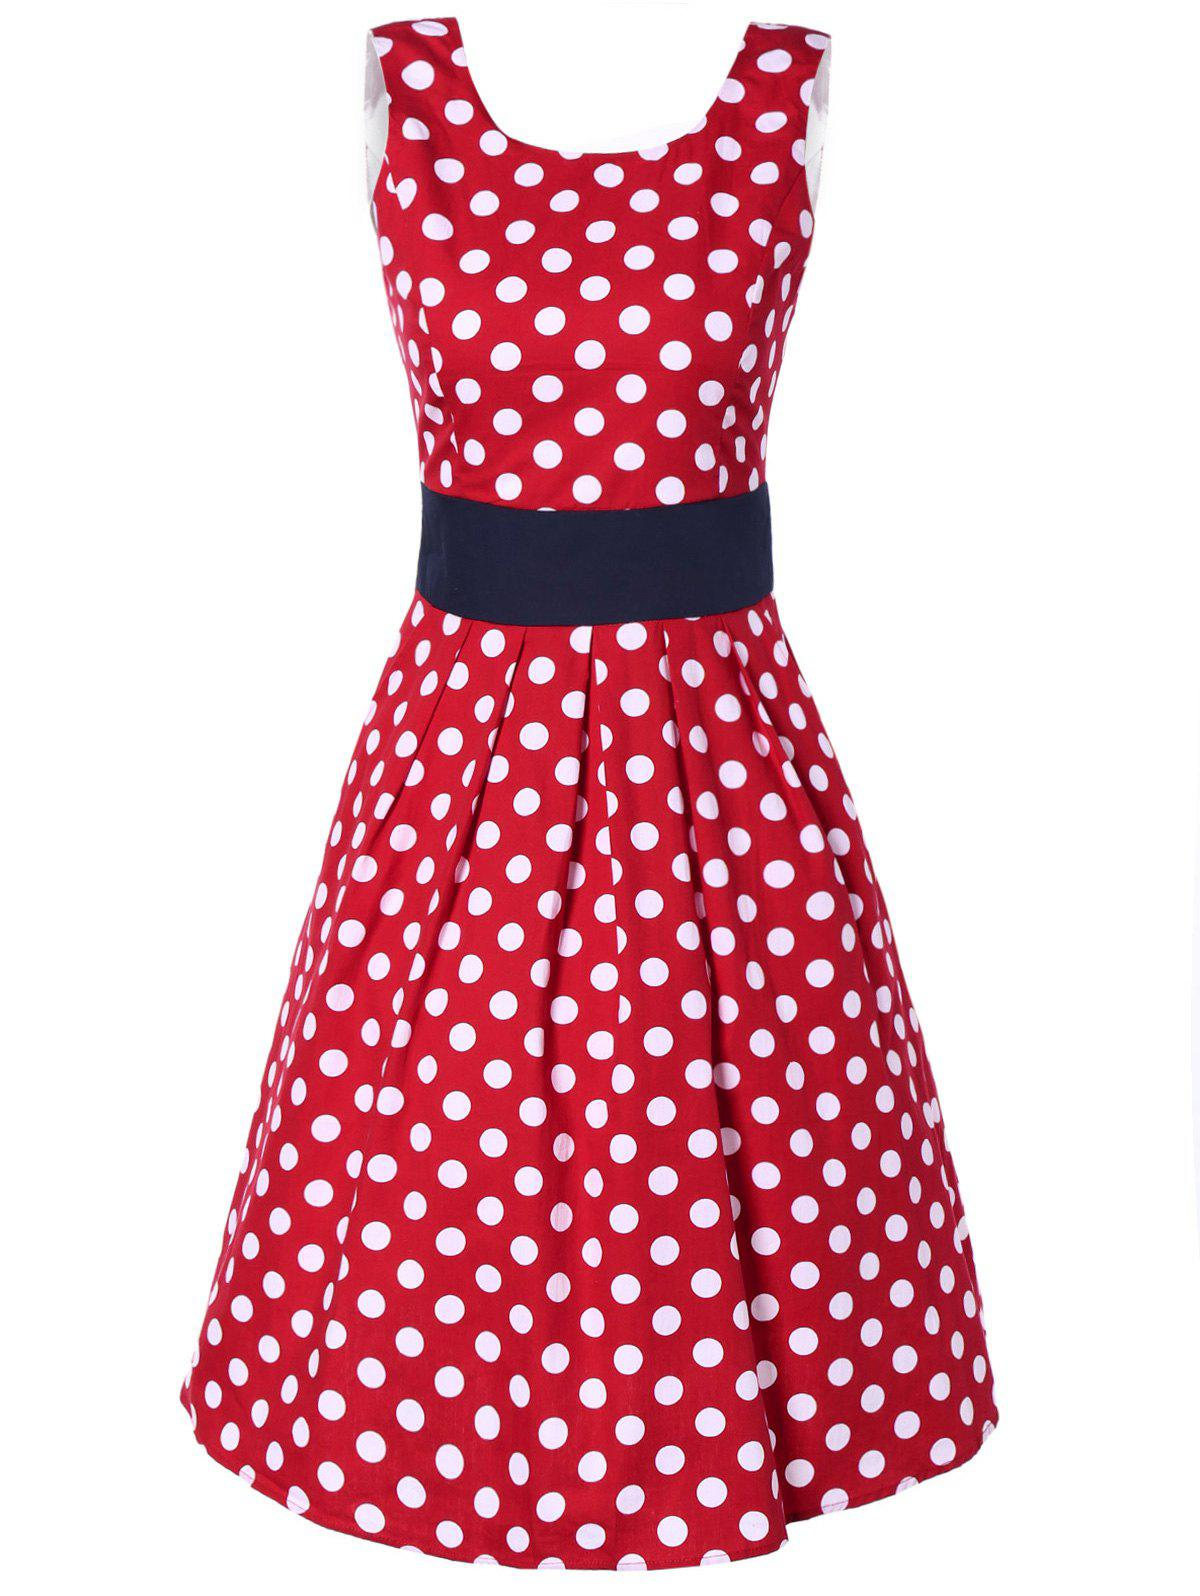 Retro Polka Dot Print Sleeveless U Neck Dress